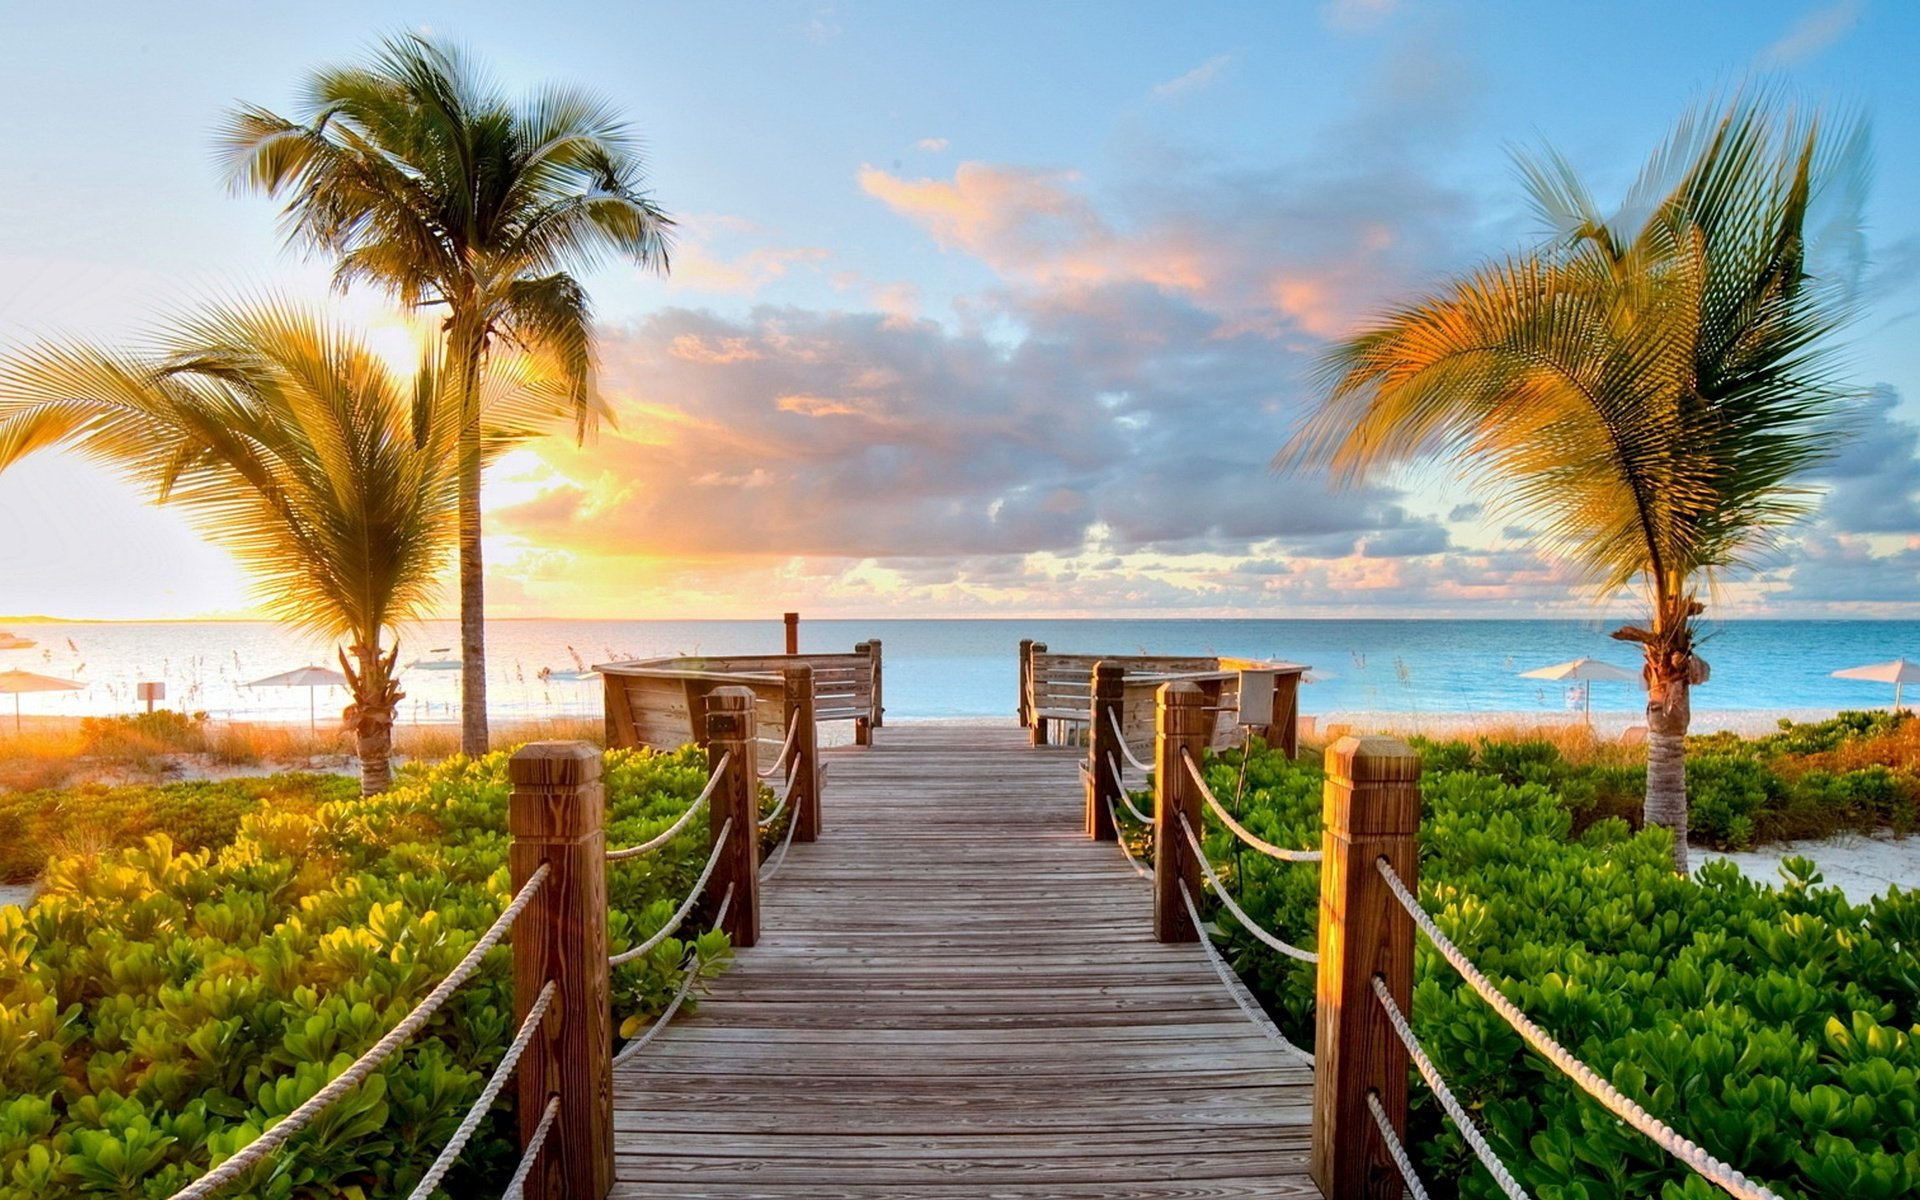 beach images Beach images wallpaper beach pictures free beach images in a tropical island images of beach and beach wallpaper.